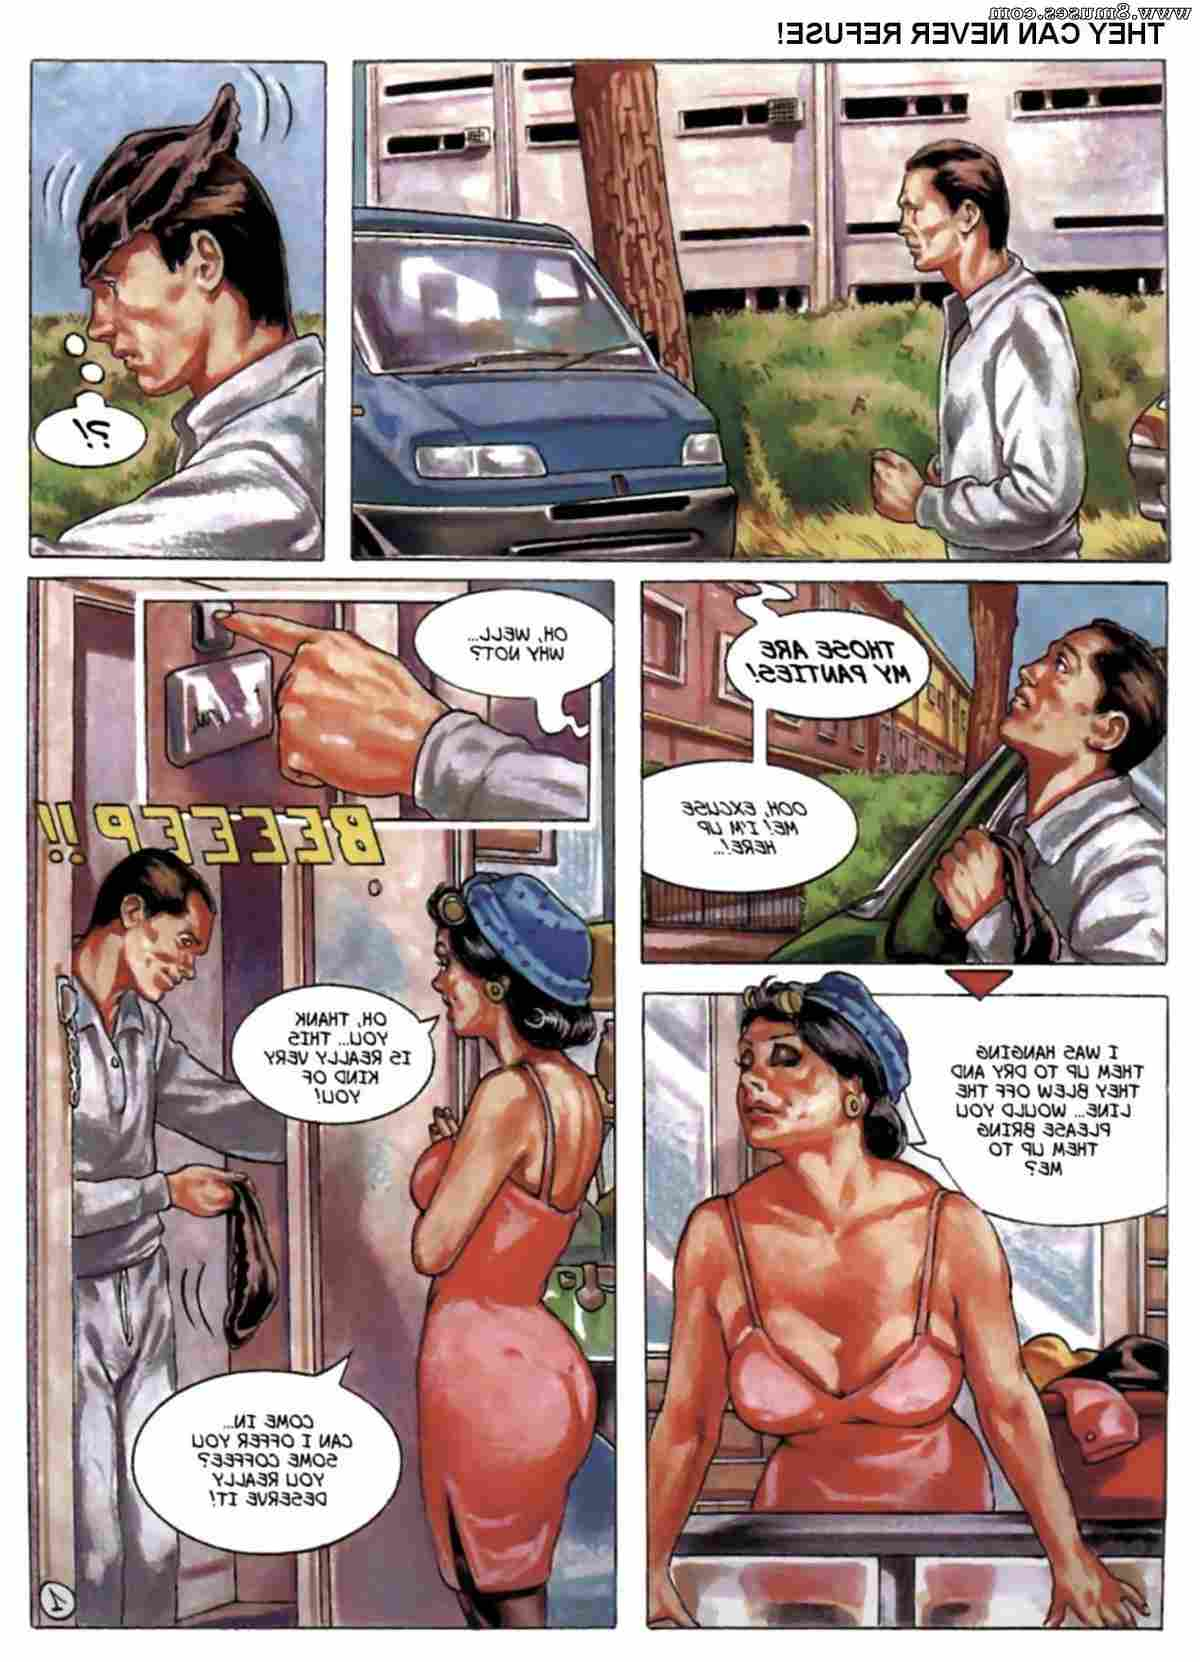 Selen-Comics/Beloved-Submission Beloved_Submission__8muses_-_Sex_and_Porn_Comics_3.jpg